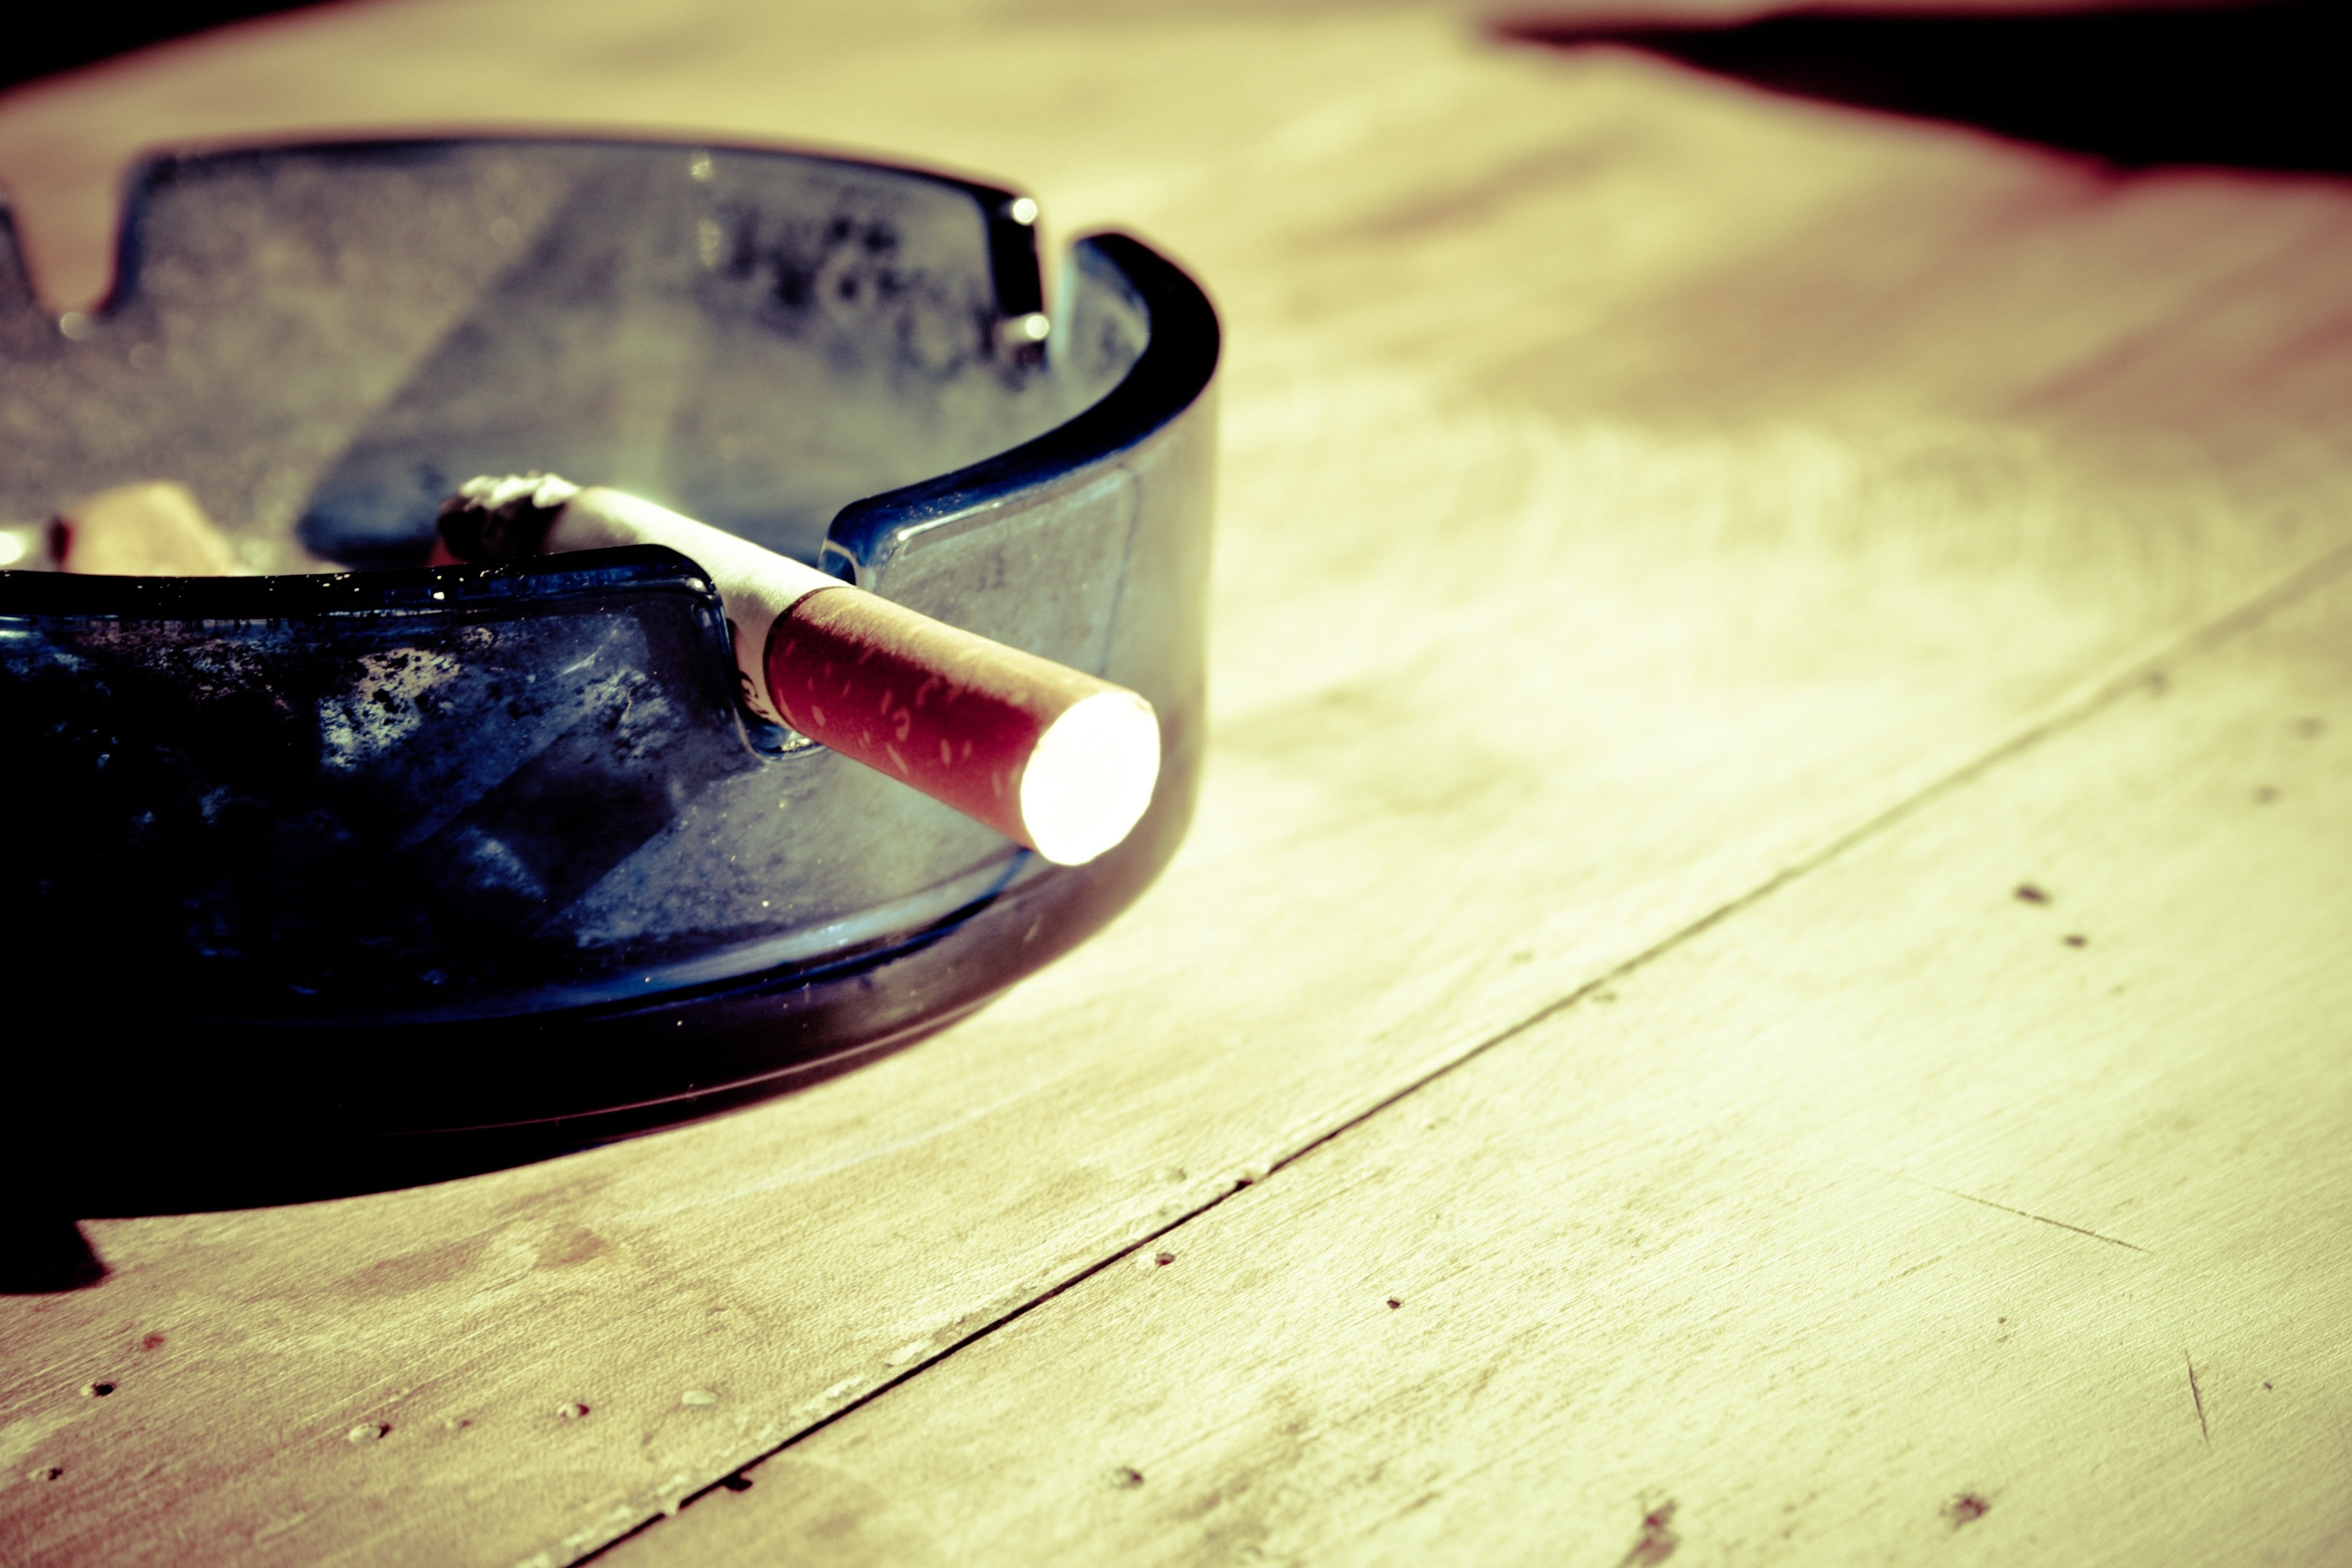 Smoking is a harmful habit that leads to almost half a million American deaths annually.